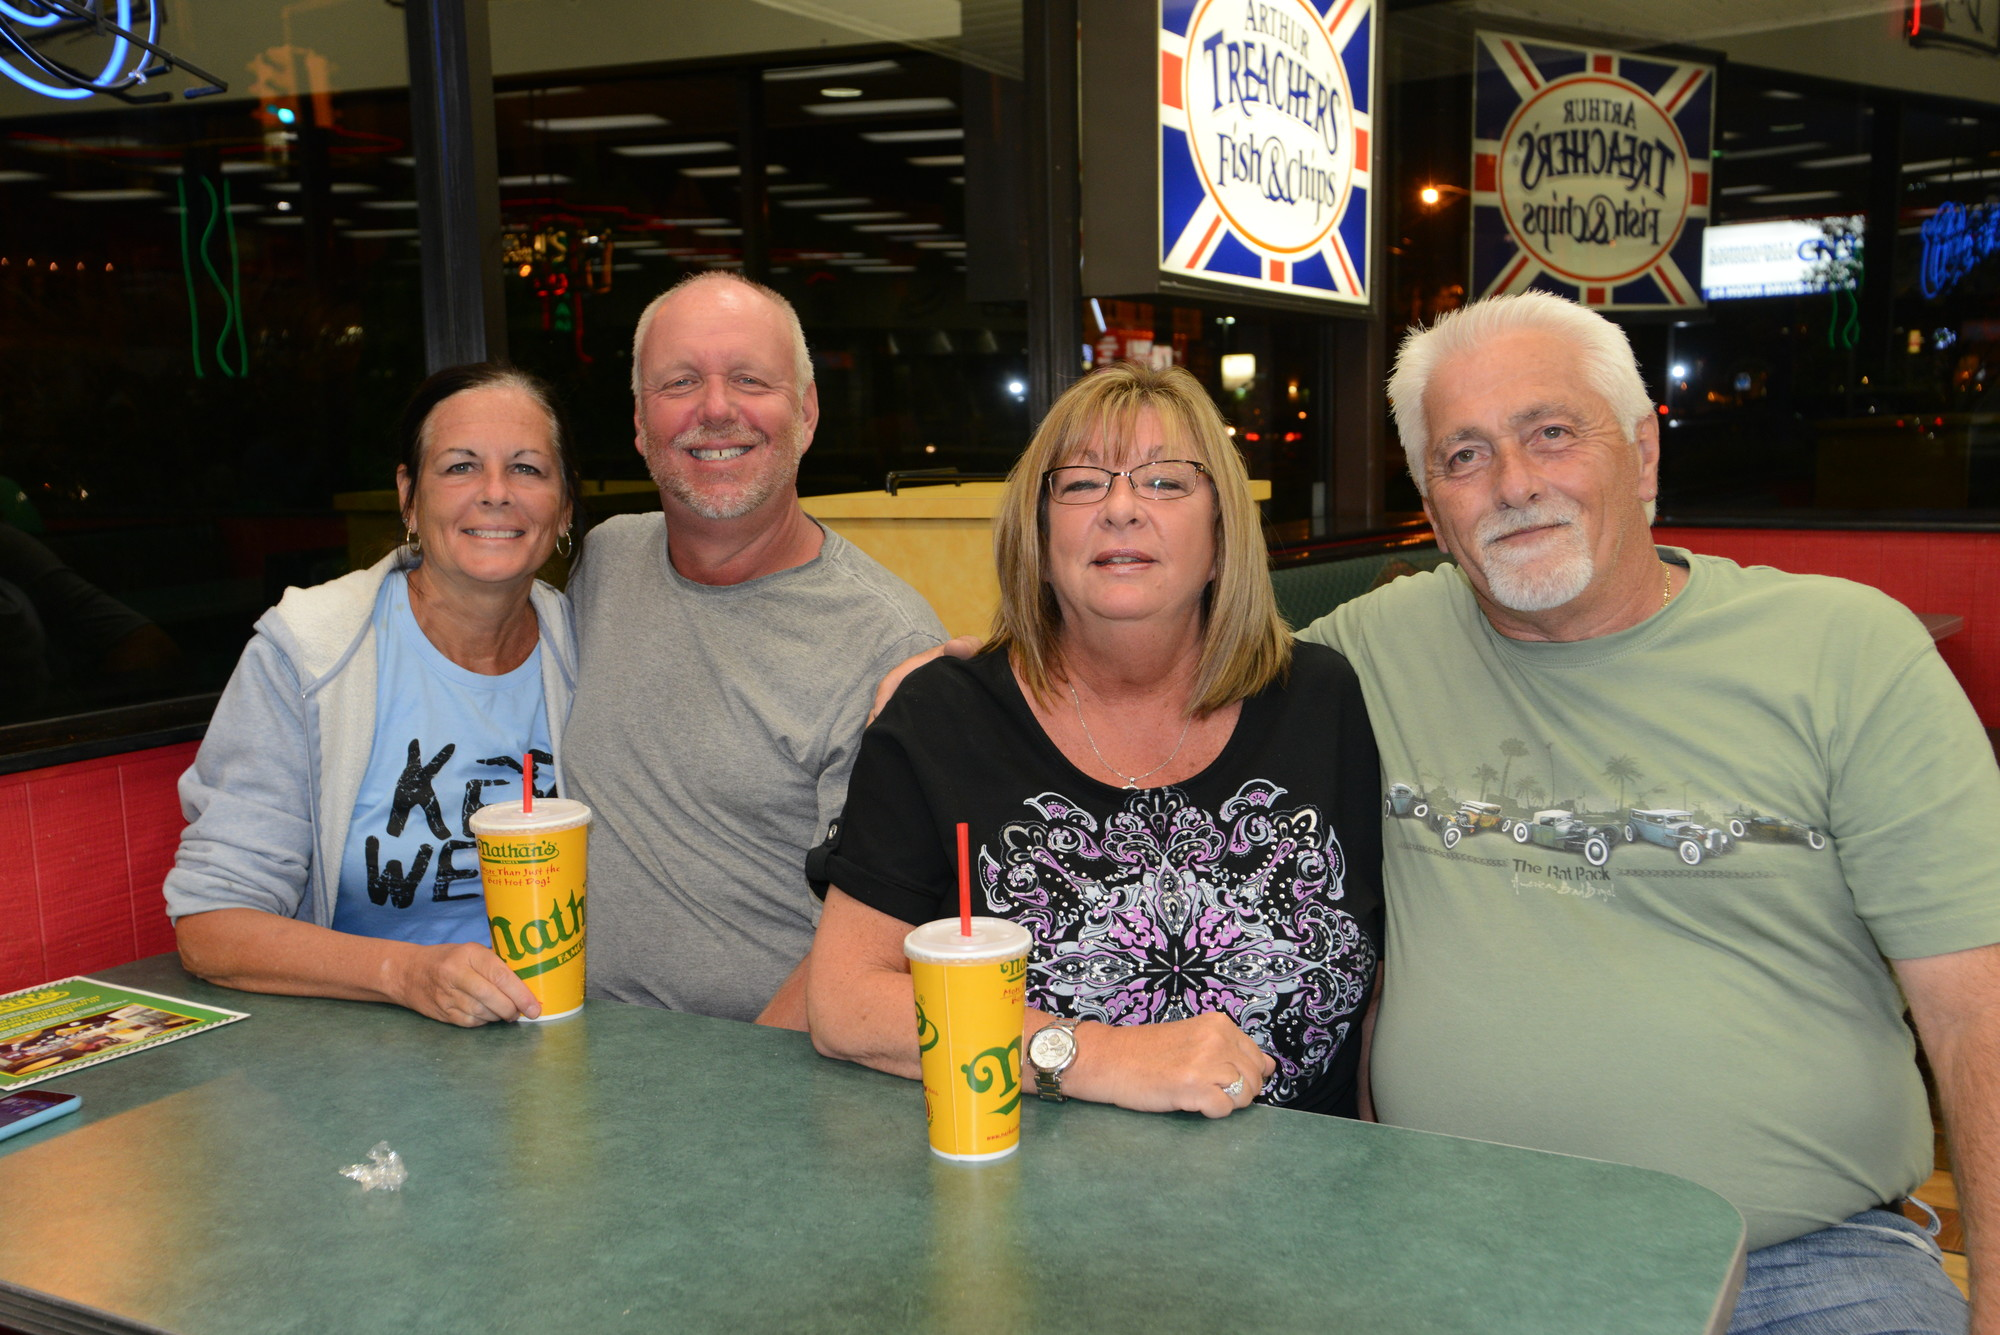 Double dating at Nathan's, just as they have since 1978, Diane and Glen China, left, and Andrea and Greg Johnson said goodbye to one of their favorite hangouts.